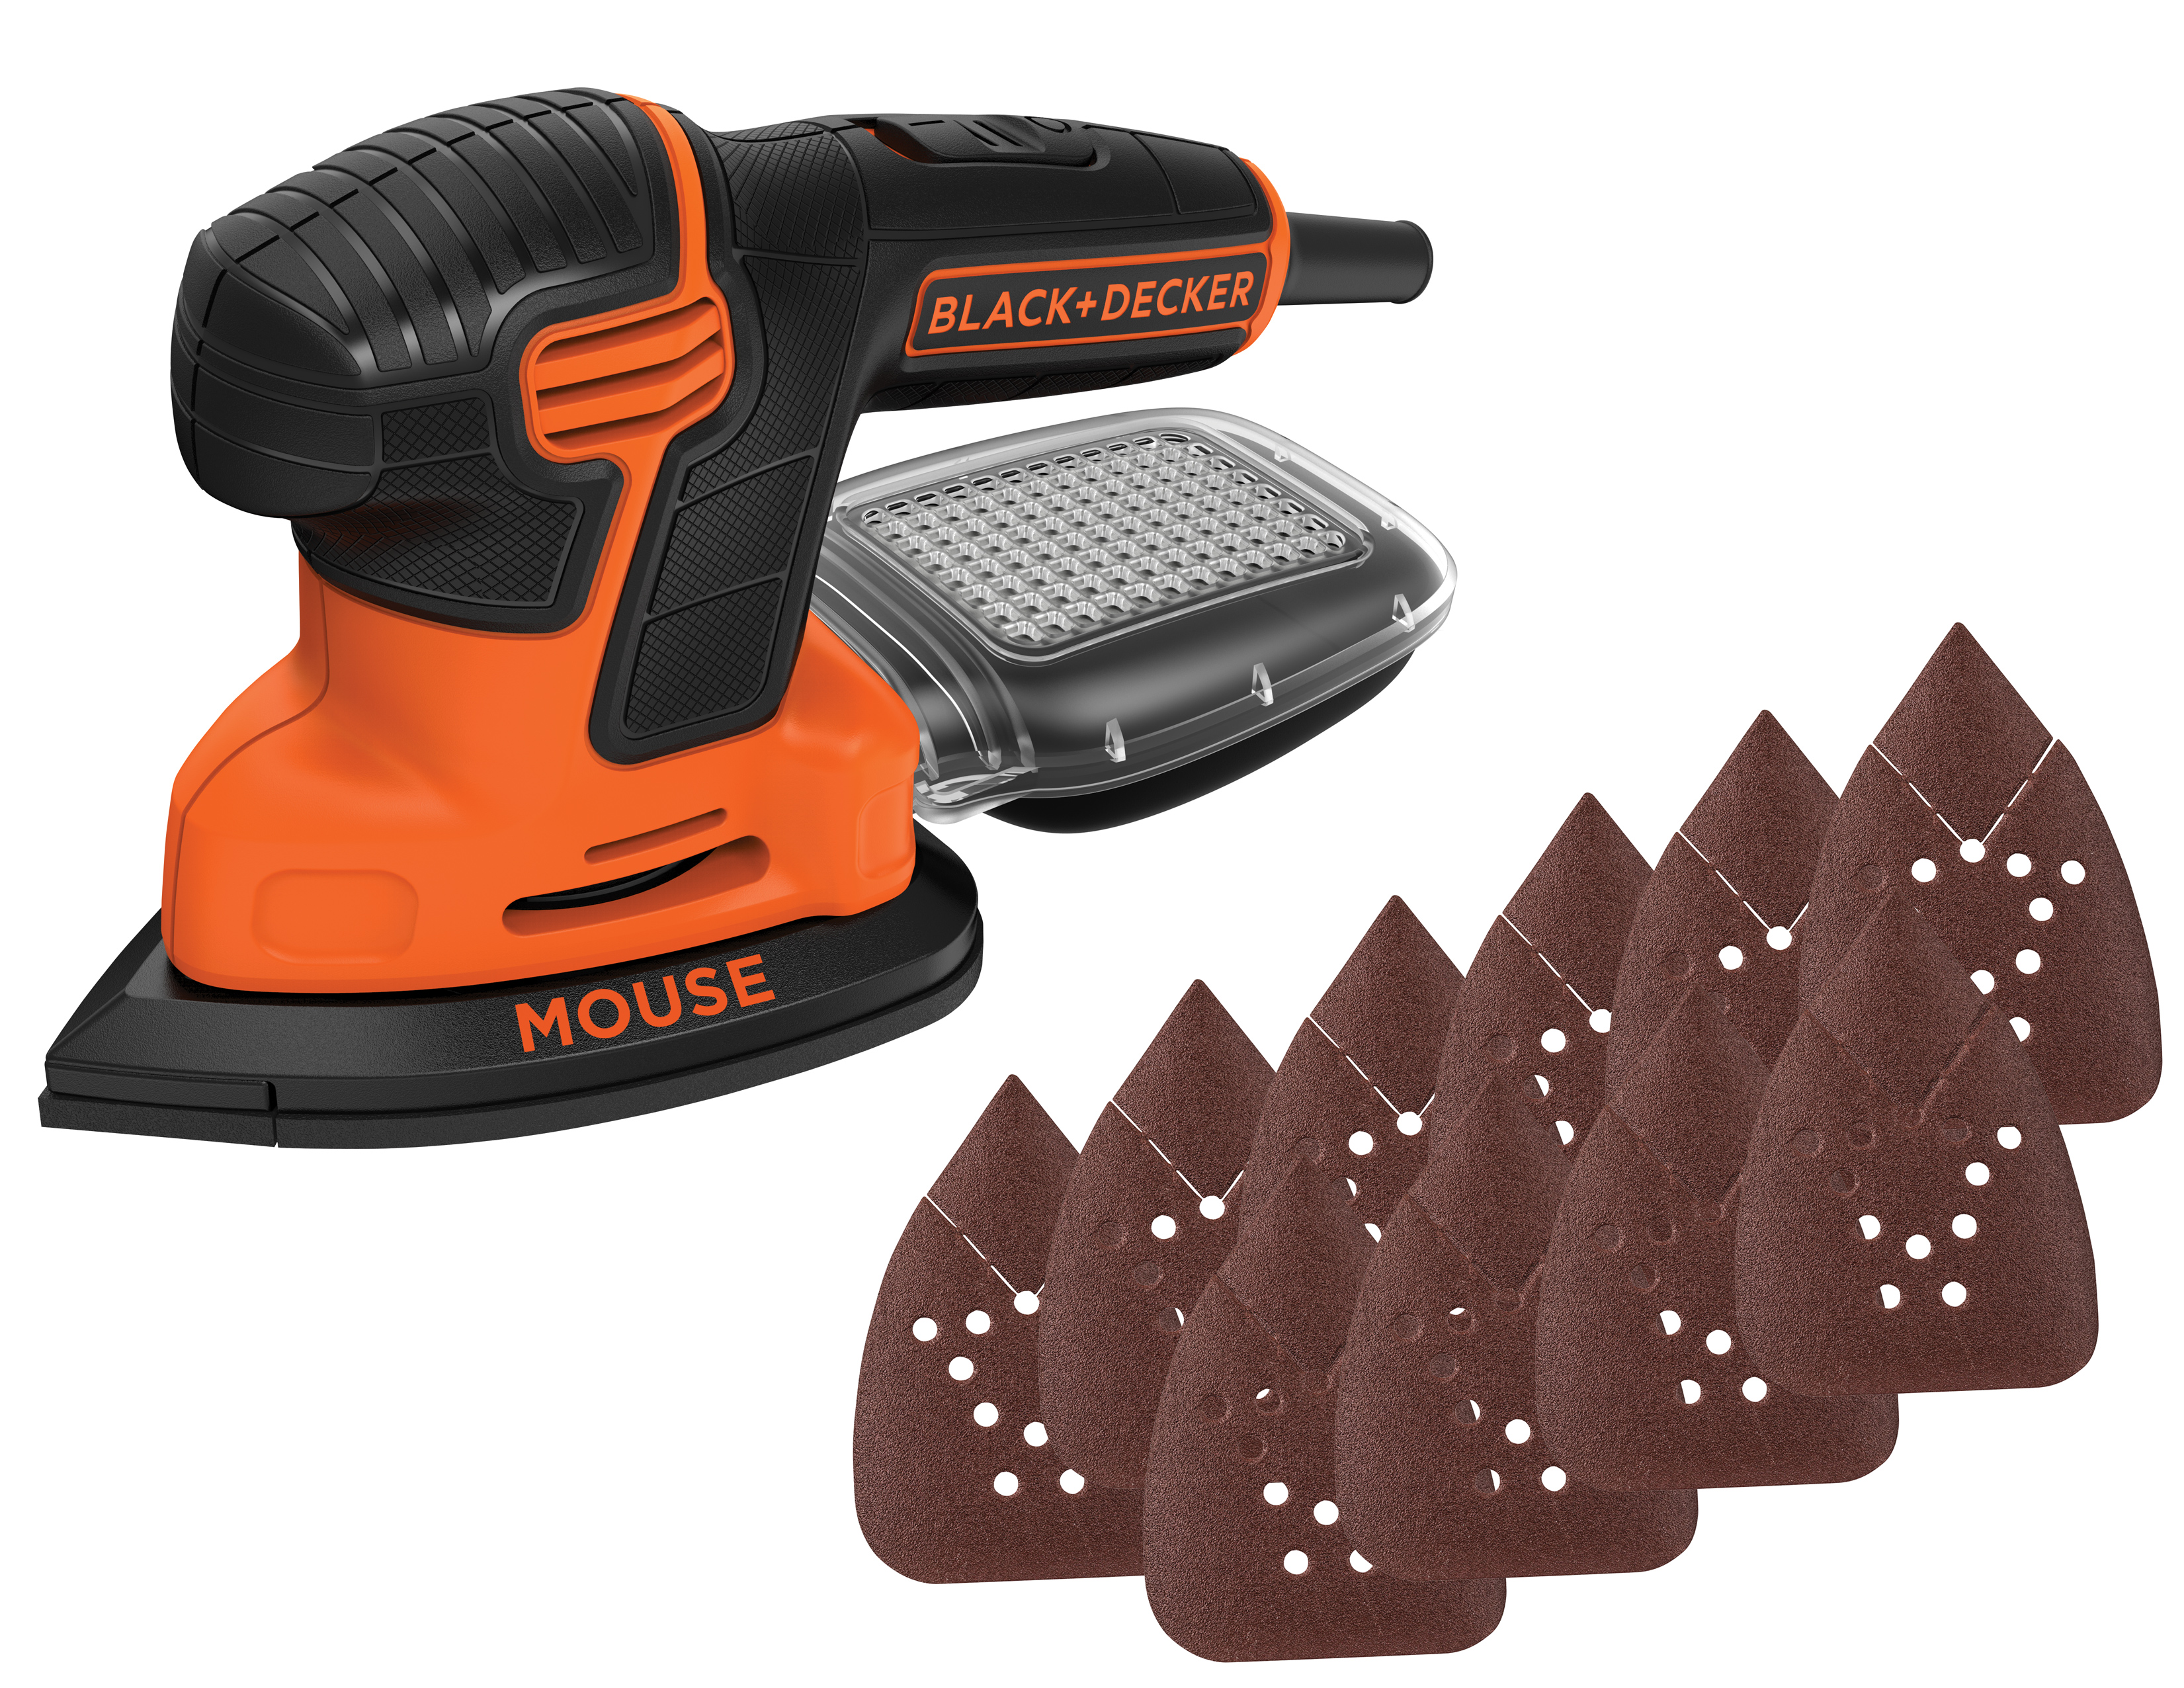 Black & Decker BDEMS600VA Mouse Detail Sander with Bonus Sandpaper by Stanley Black & Decker